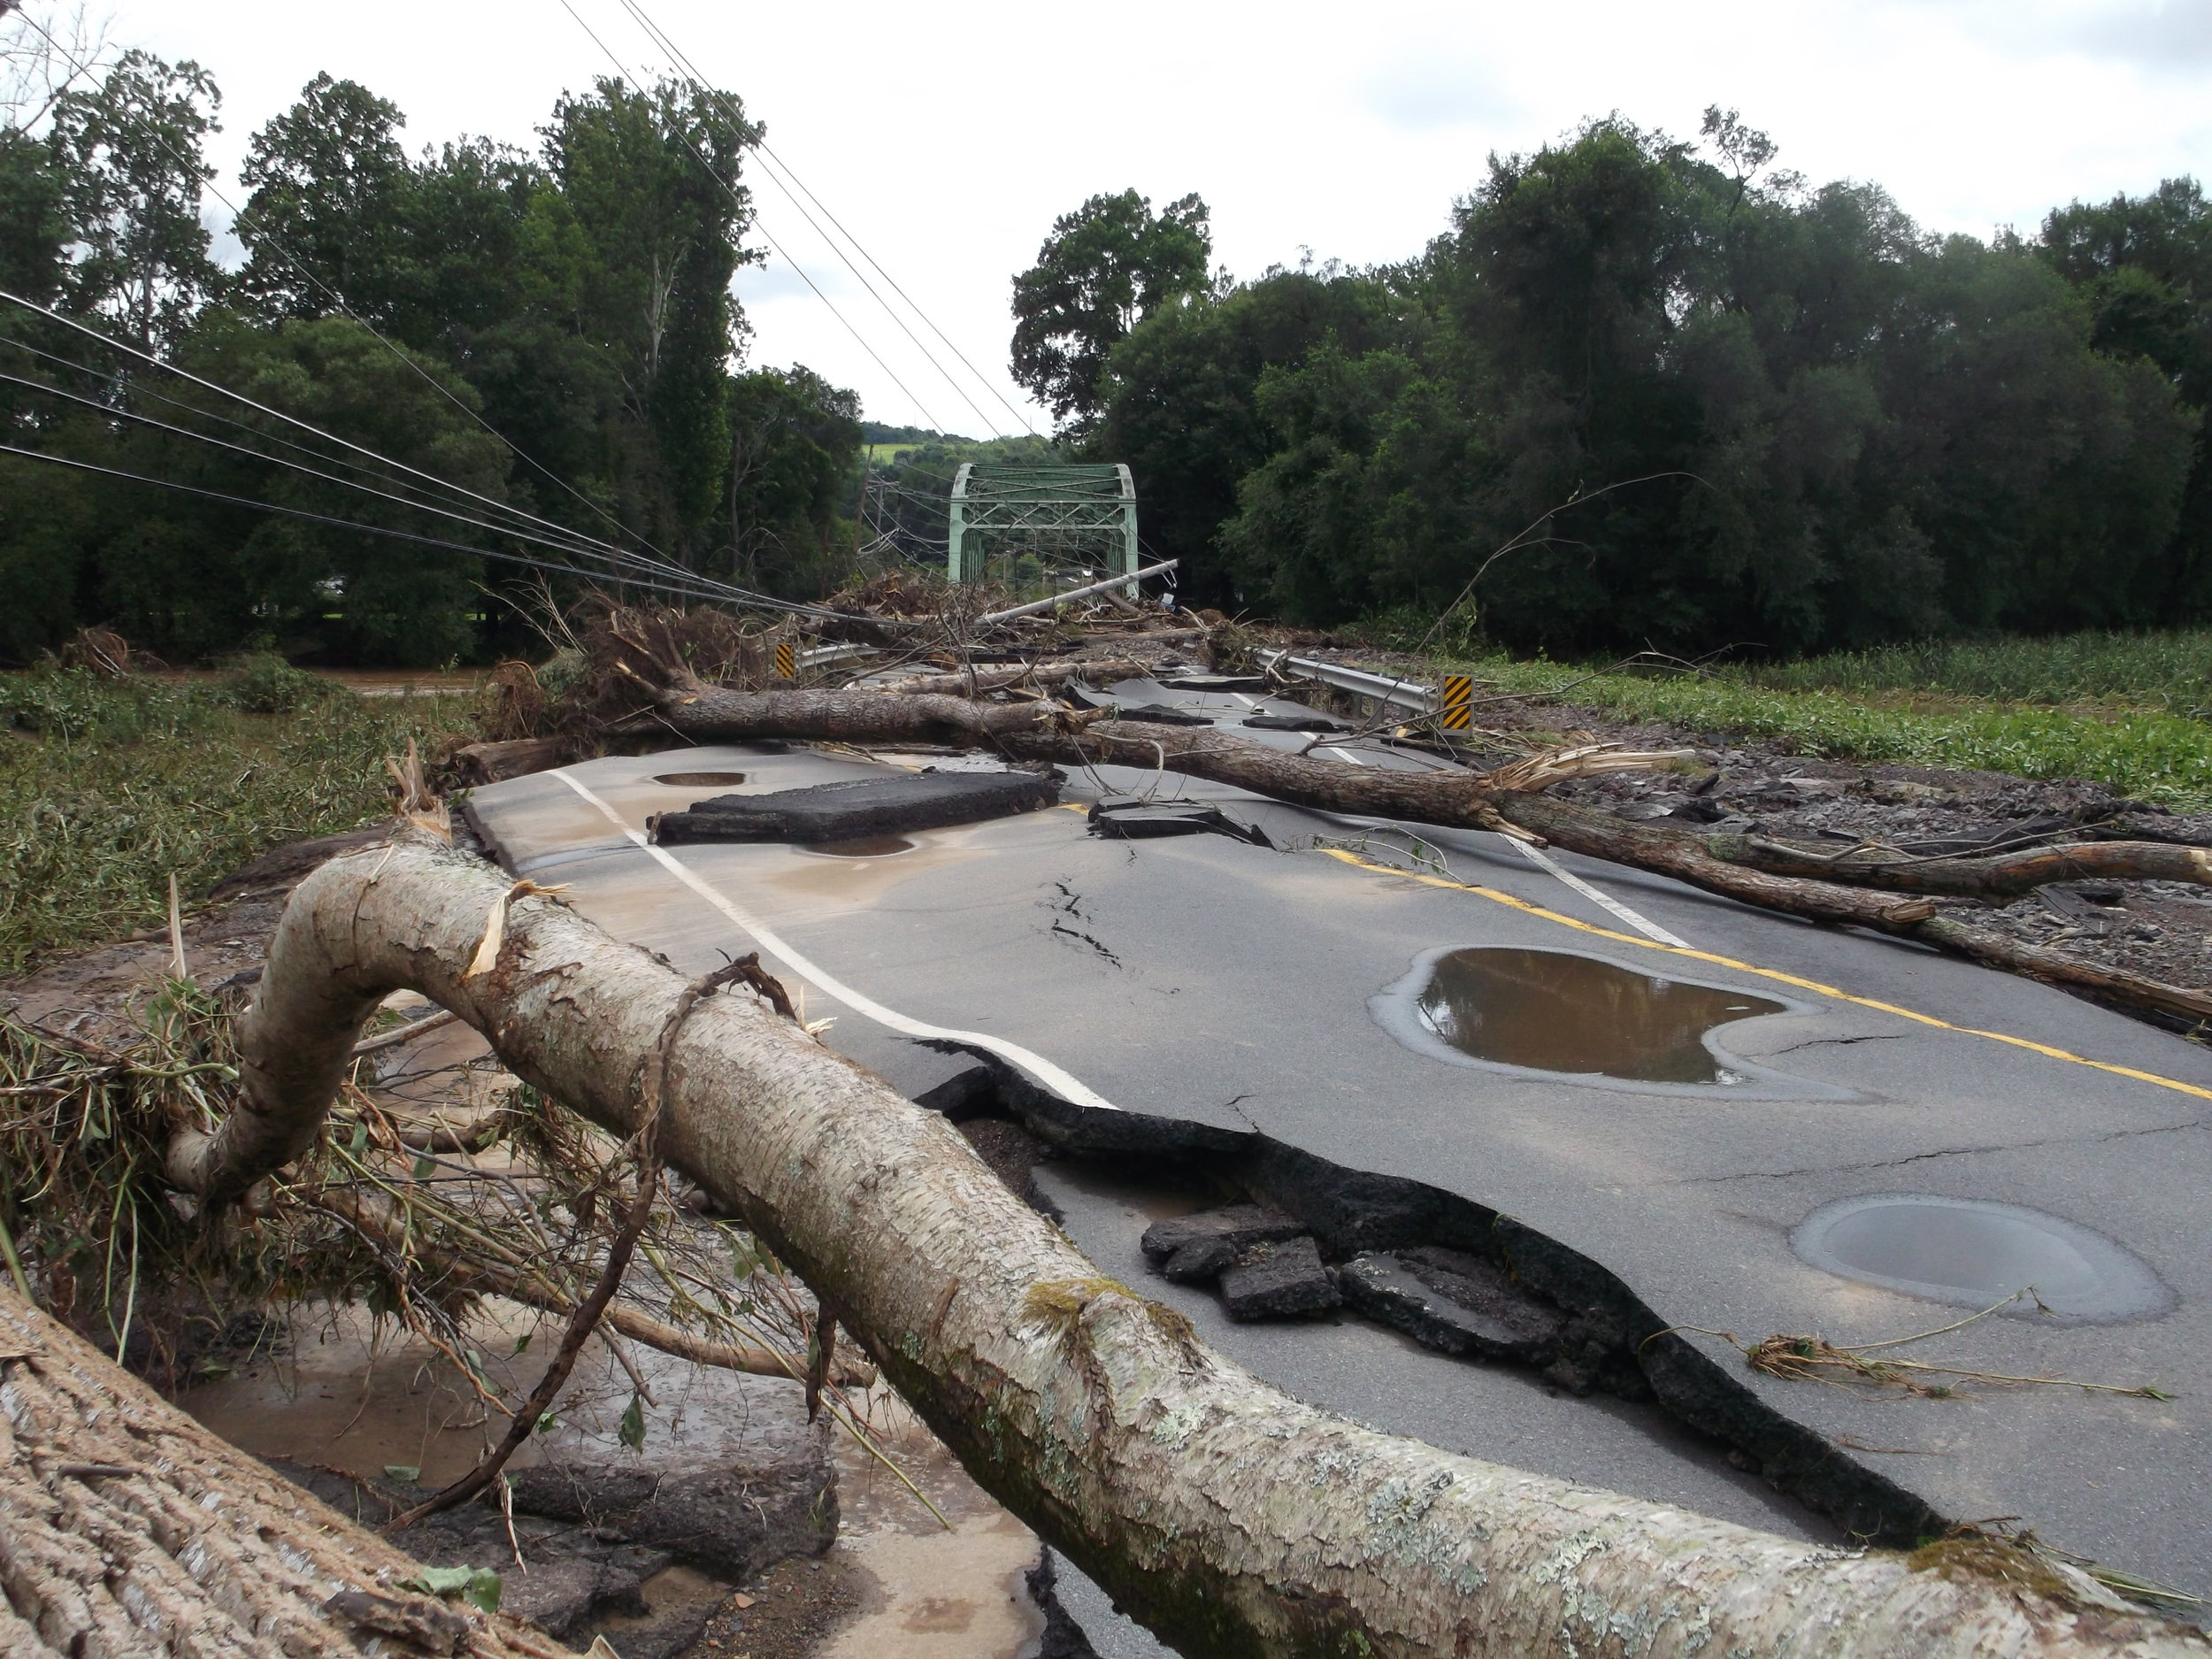 Power lines downed and sheets of asphalt roadway displaced by flood waters on Millville Road over Fishing Creek near Bloomsburg